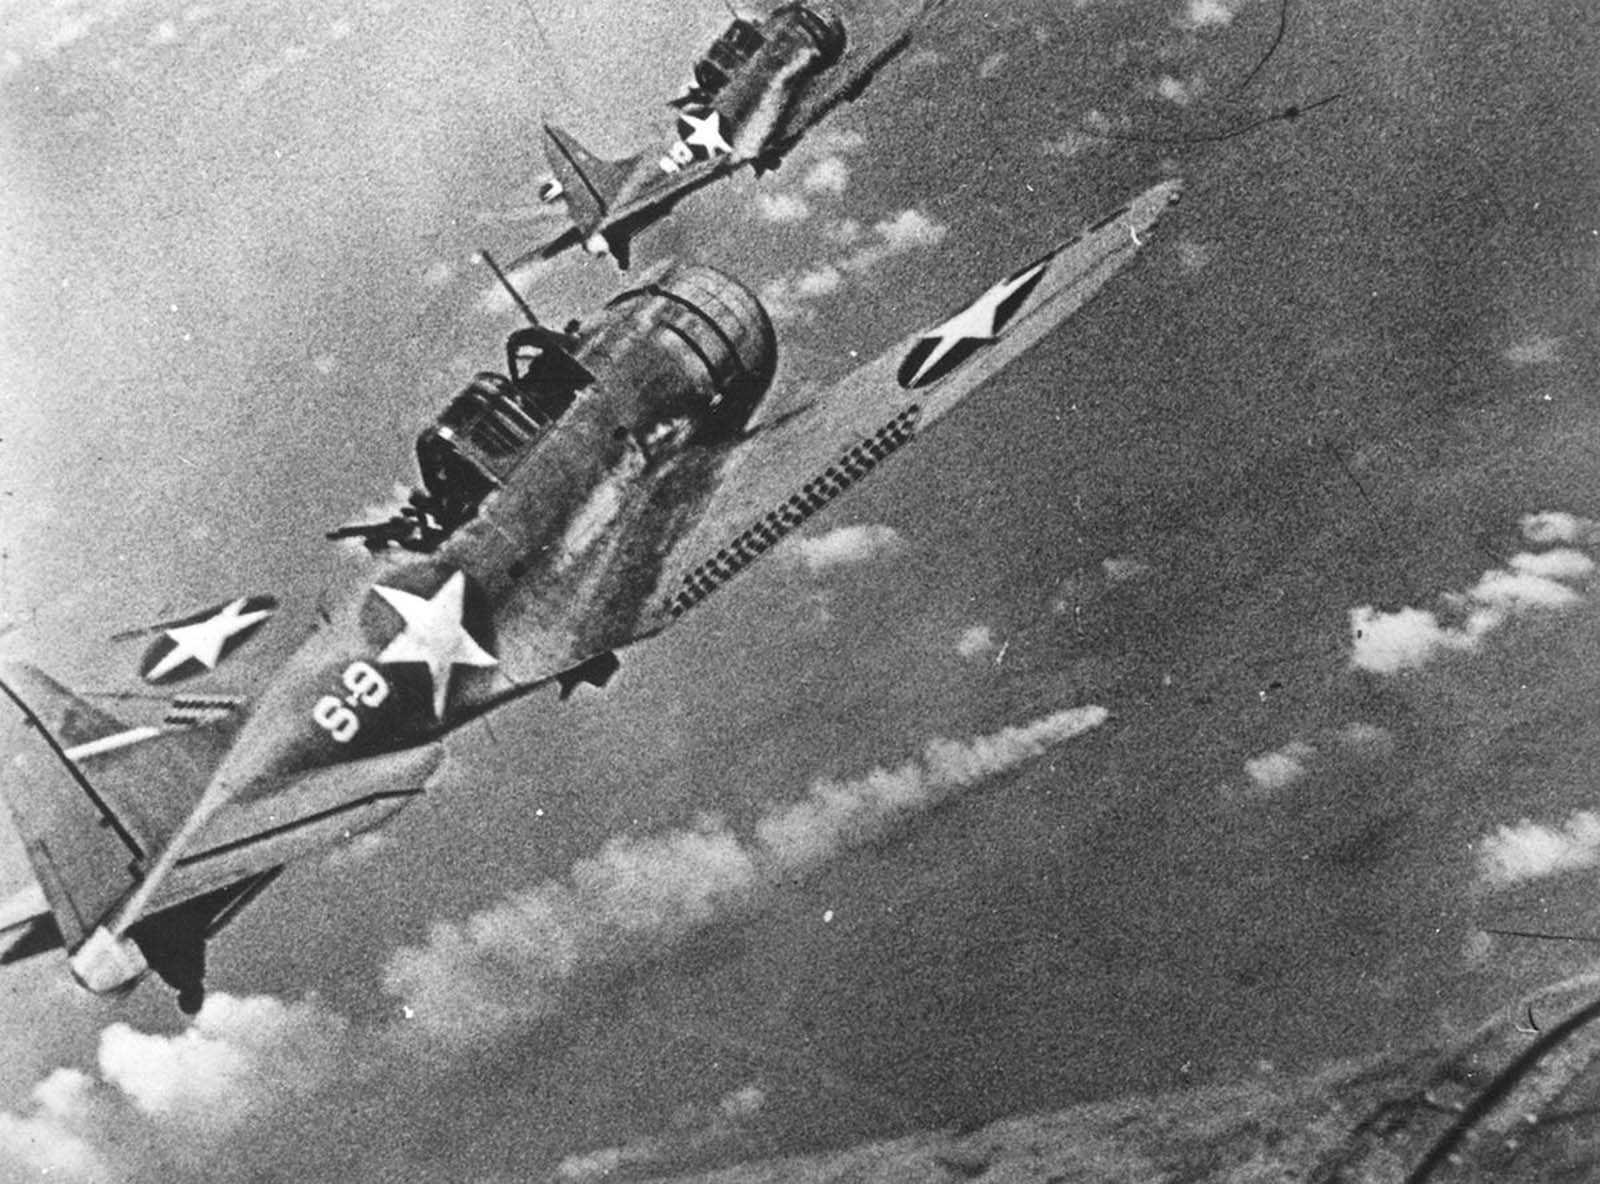 Navy fighters during the attack on the Japanese fleet off Midway, in June of 1942. At center a burning Japanese ship is visible.